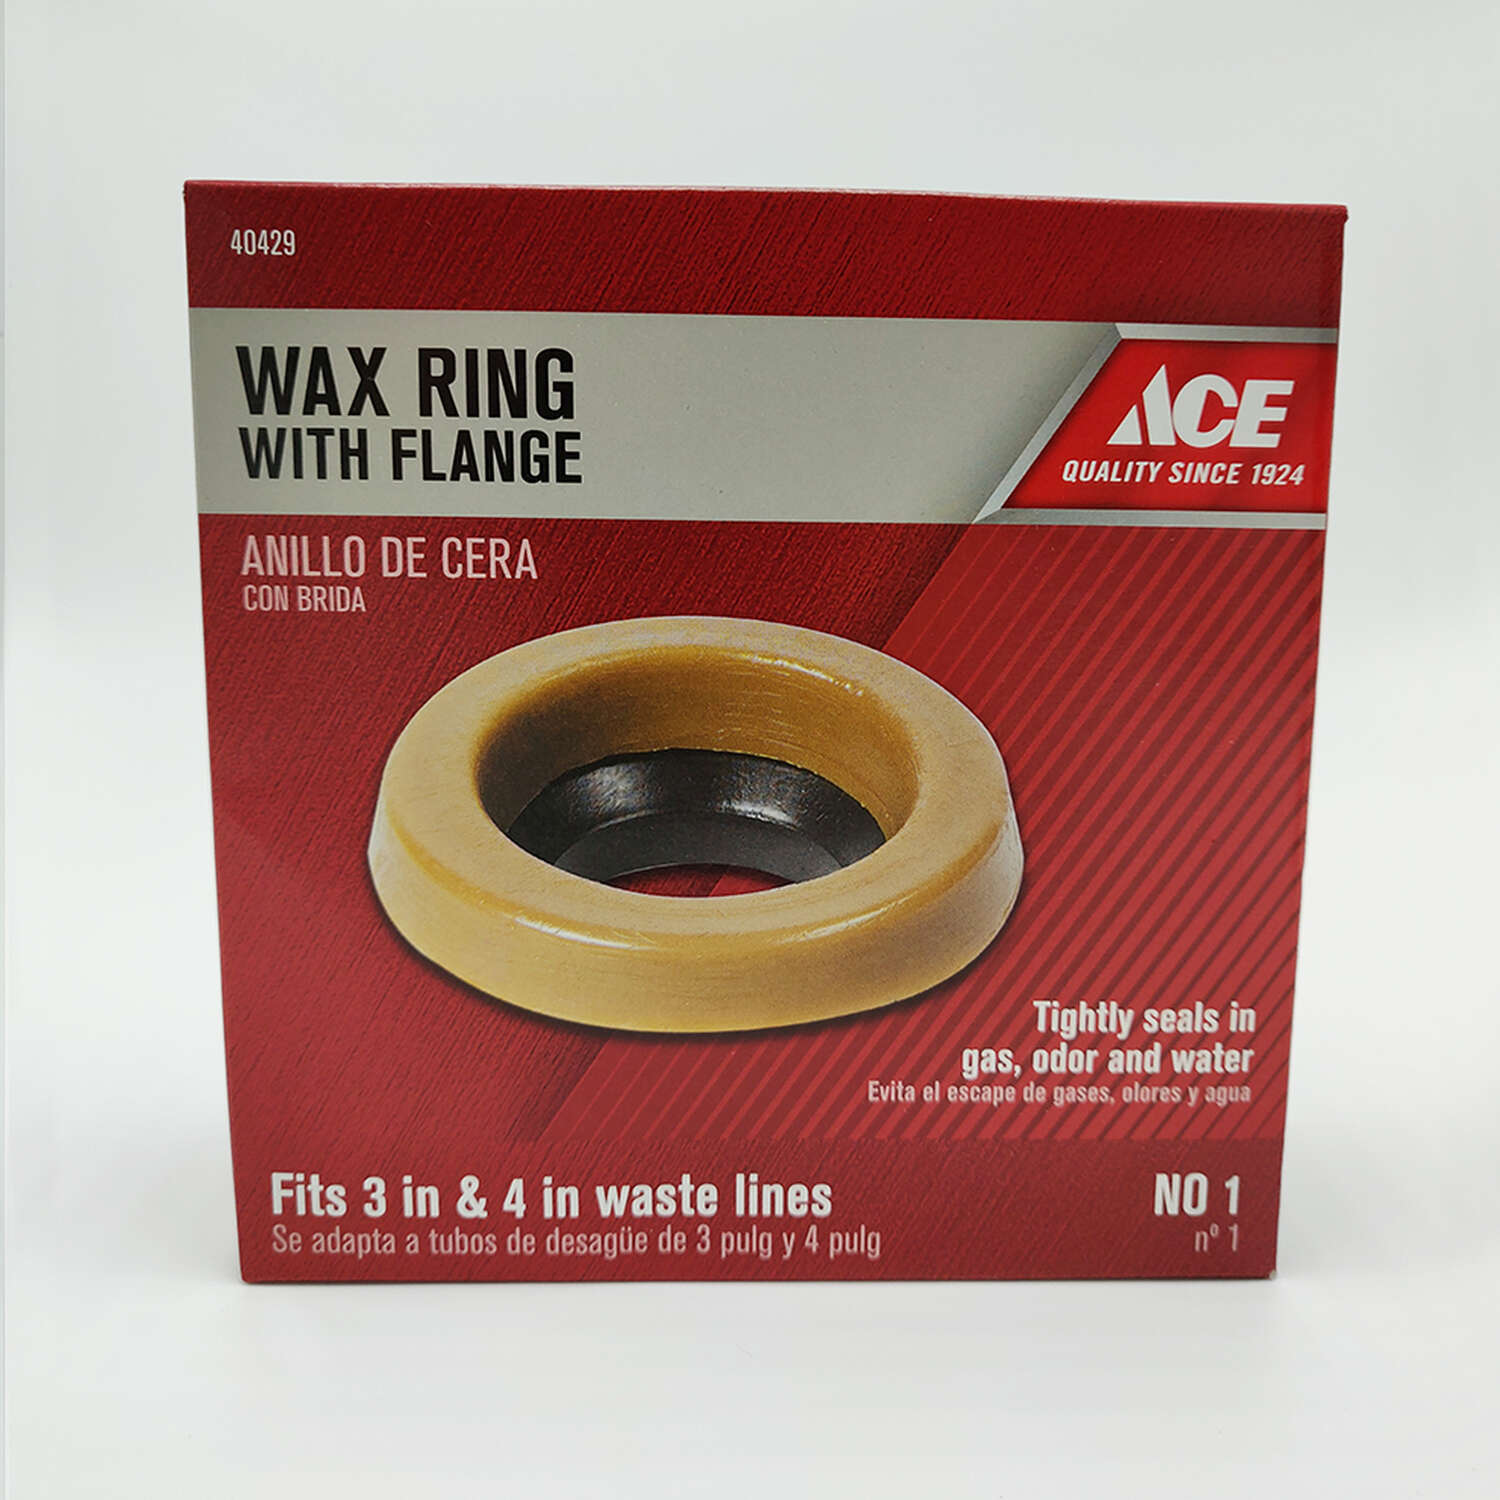 Ace Wax Ring with Flange